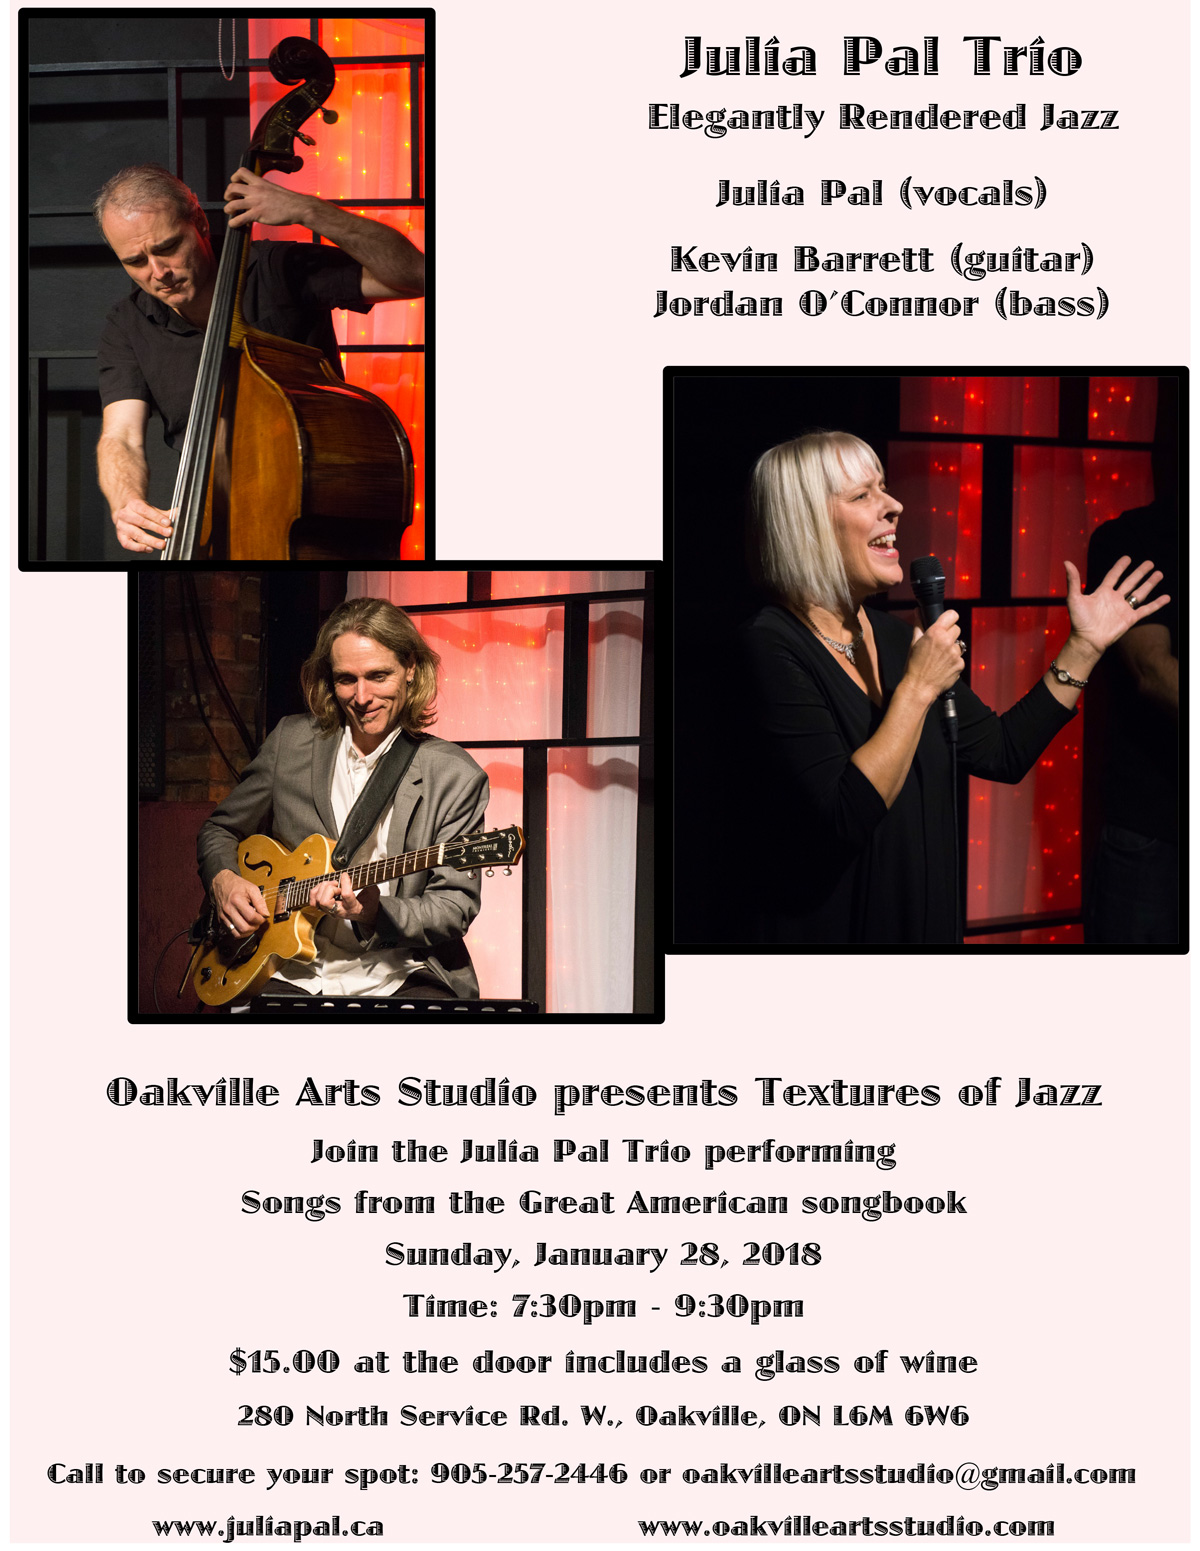 Julia Pal Trio - January 28, 2018